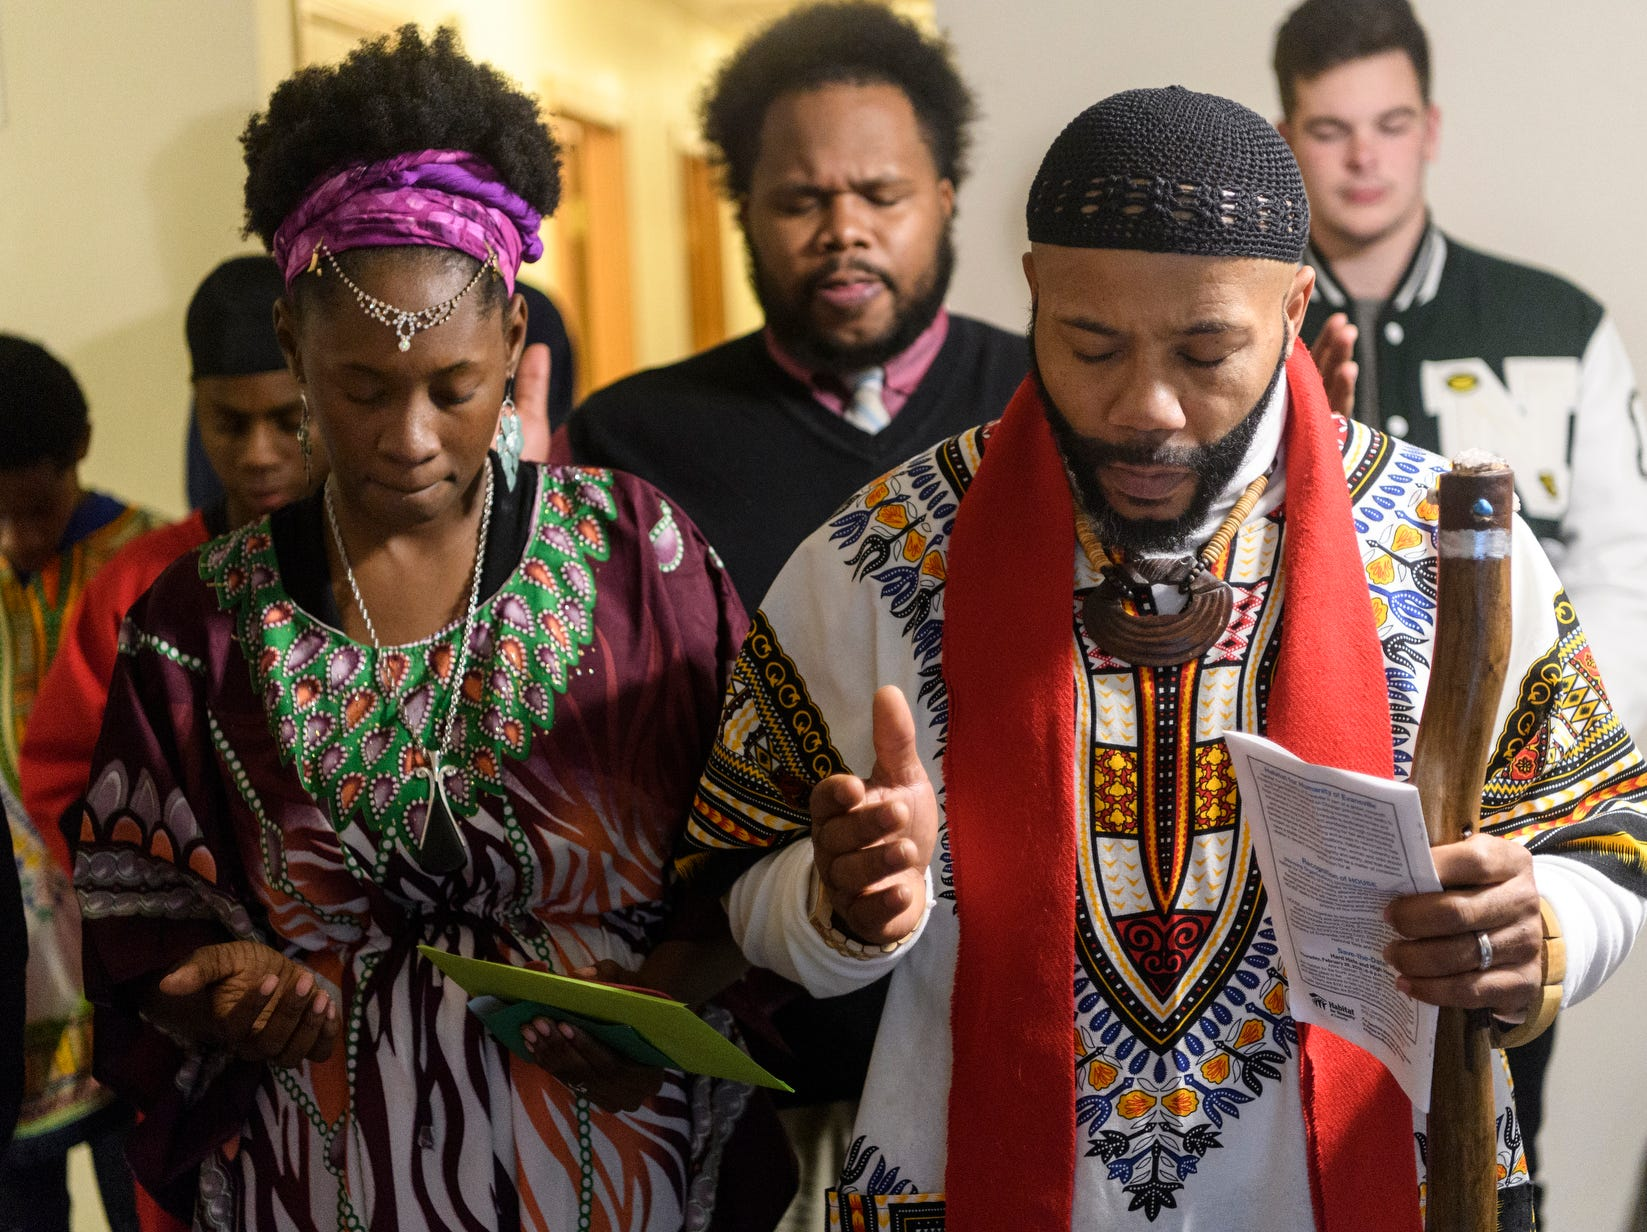 Homeowners MeShia, left, and Steven Kince, right, pray with their friends and family during a Hebrew home blessing provided by Pastor Yoshiyah, also known as Edward Logan, of Madisonville, Ky., following the 500th Habitat for Humanity home dedication ceremony on Bedford Avenue in Evansville, Ind., Thursday, Dec. 20, 2018. The Kinces and five of their children are expected to move into their five bedroom, two bathroom house at the end of January.